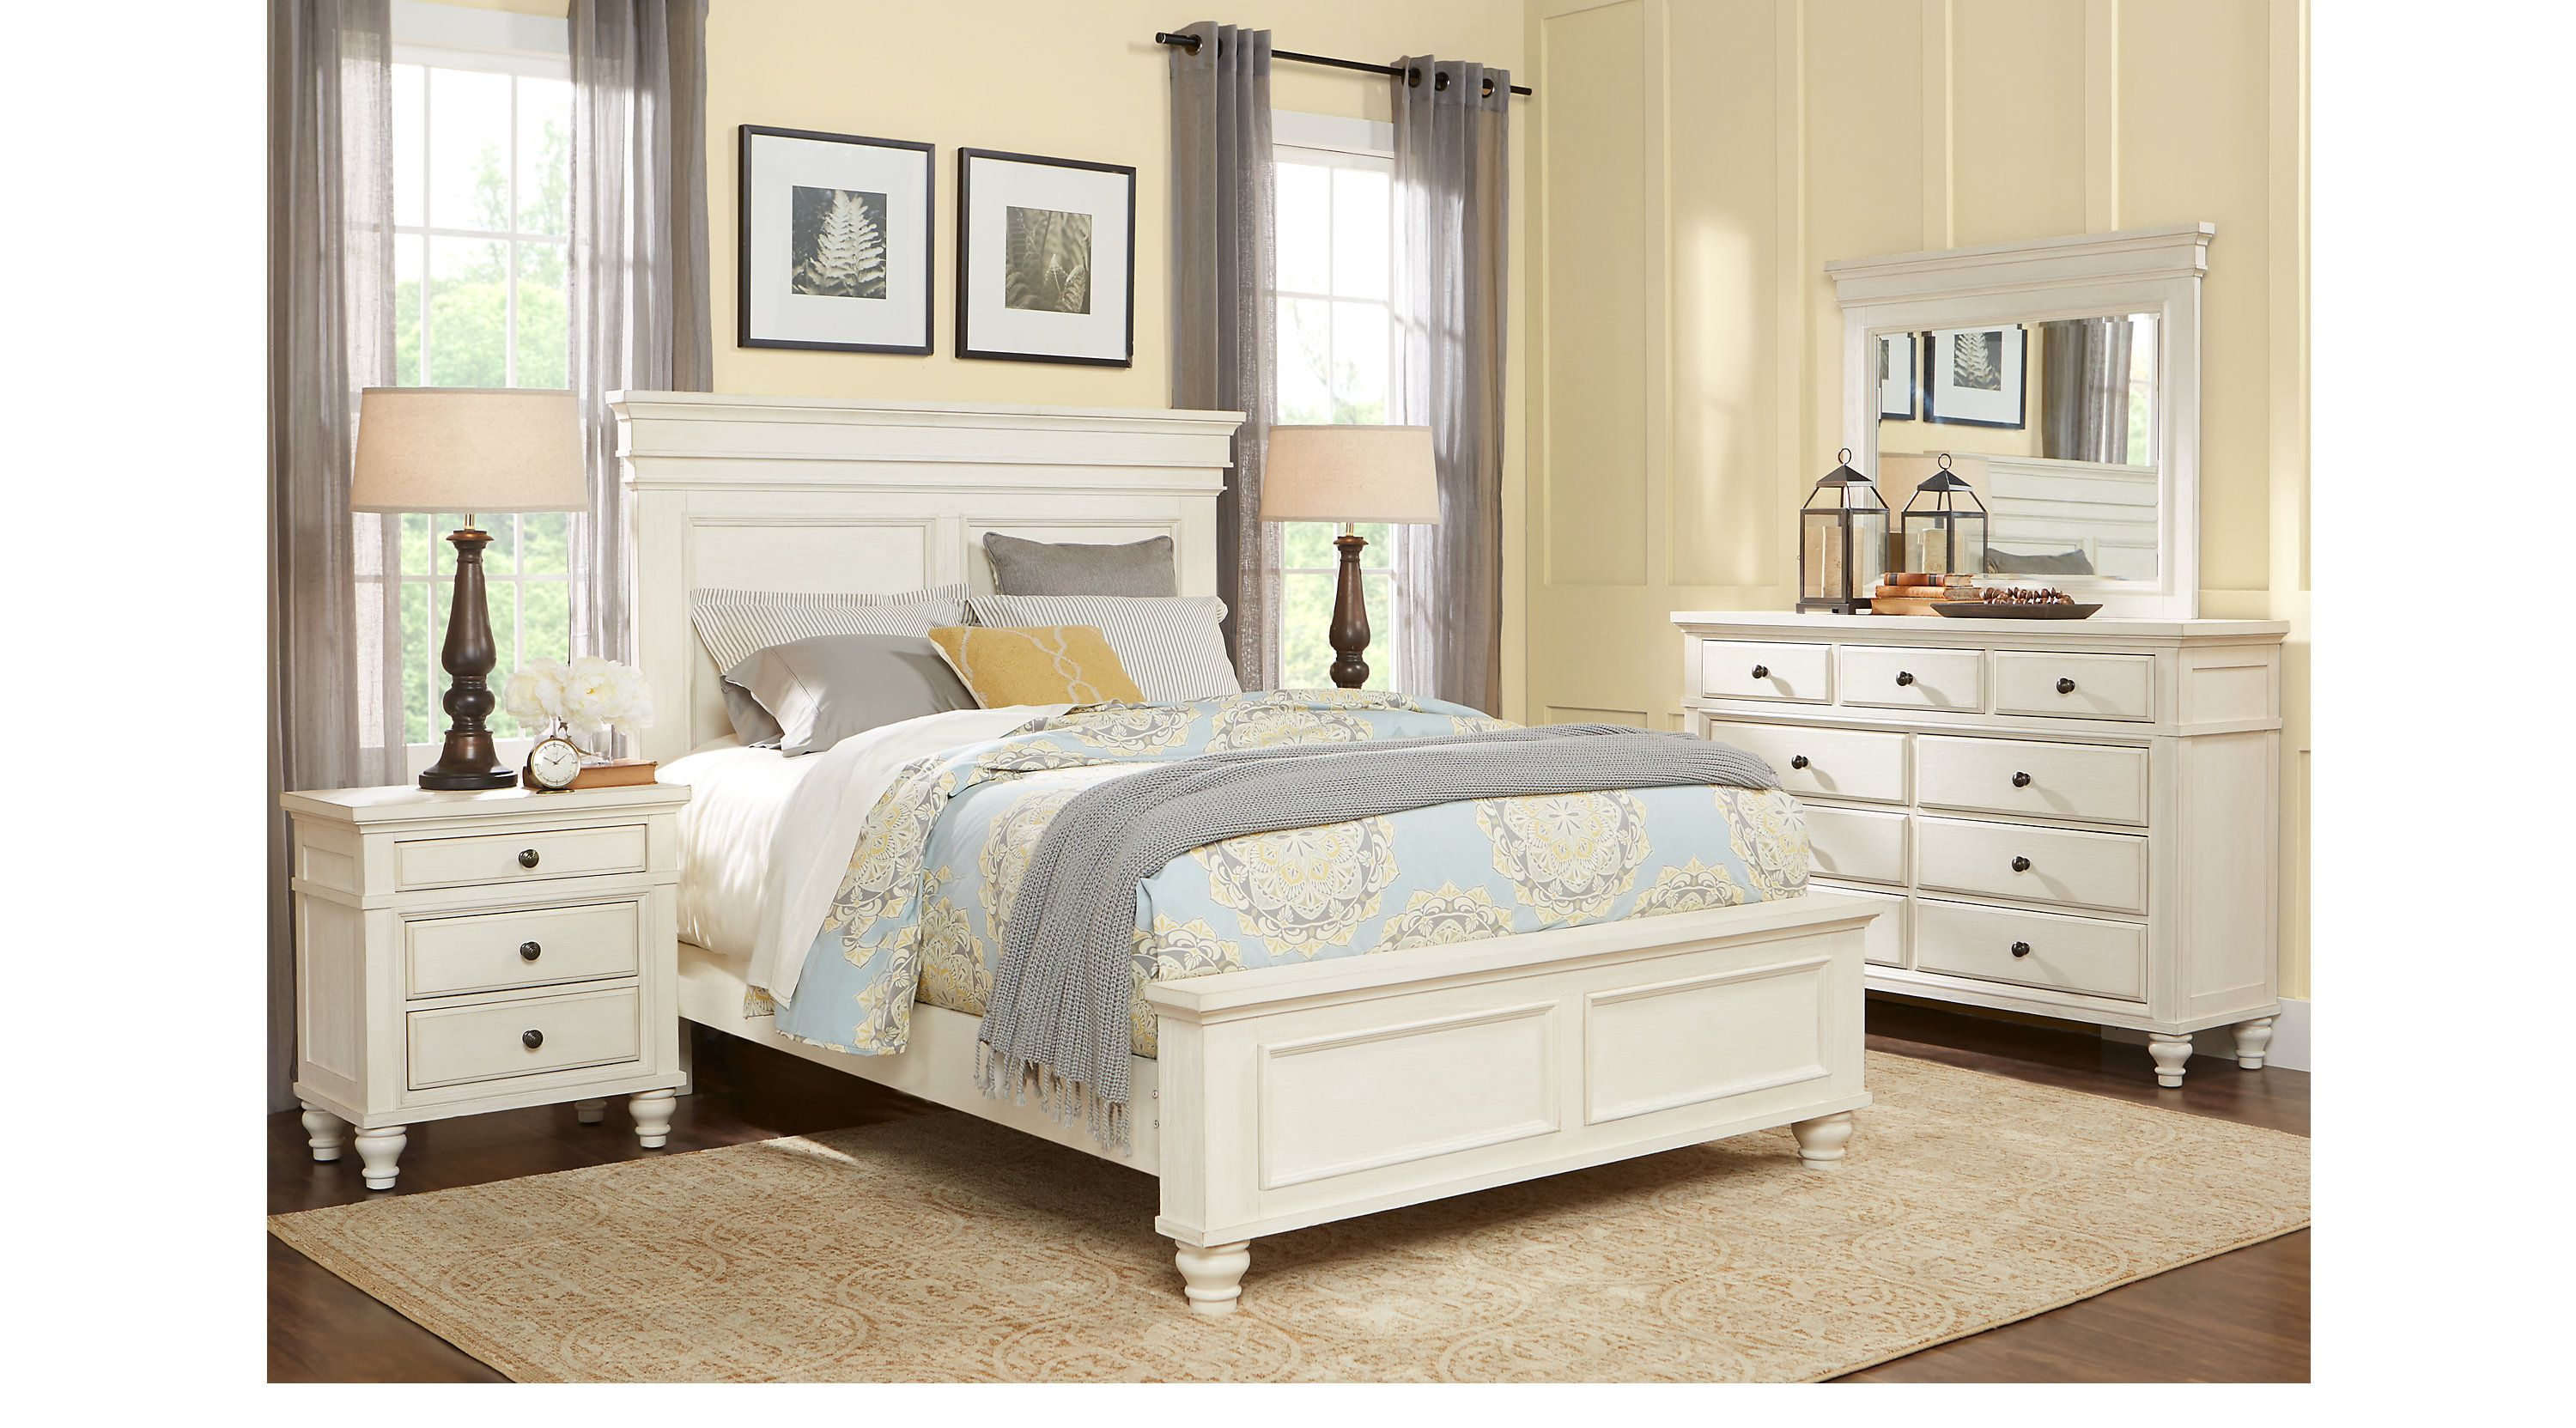 Lake Town Off White 5 Pc King Panel Bedroom King Bedroom Sets